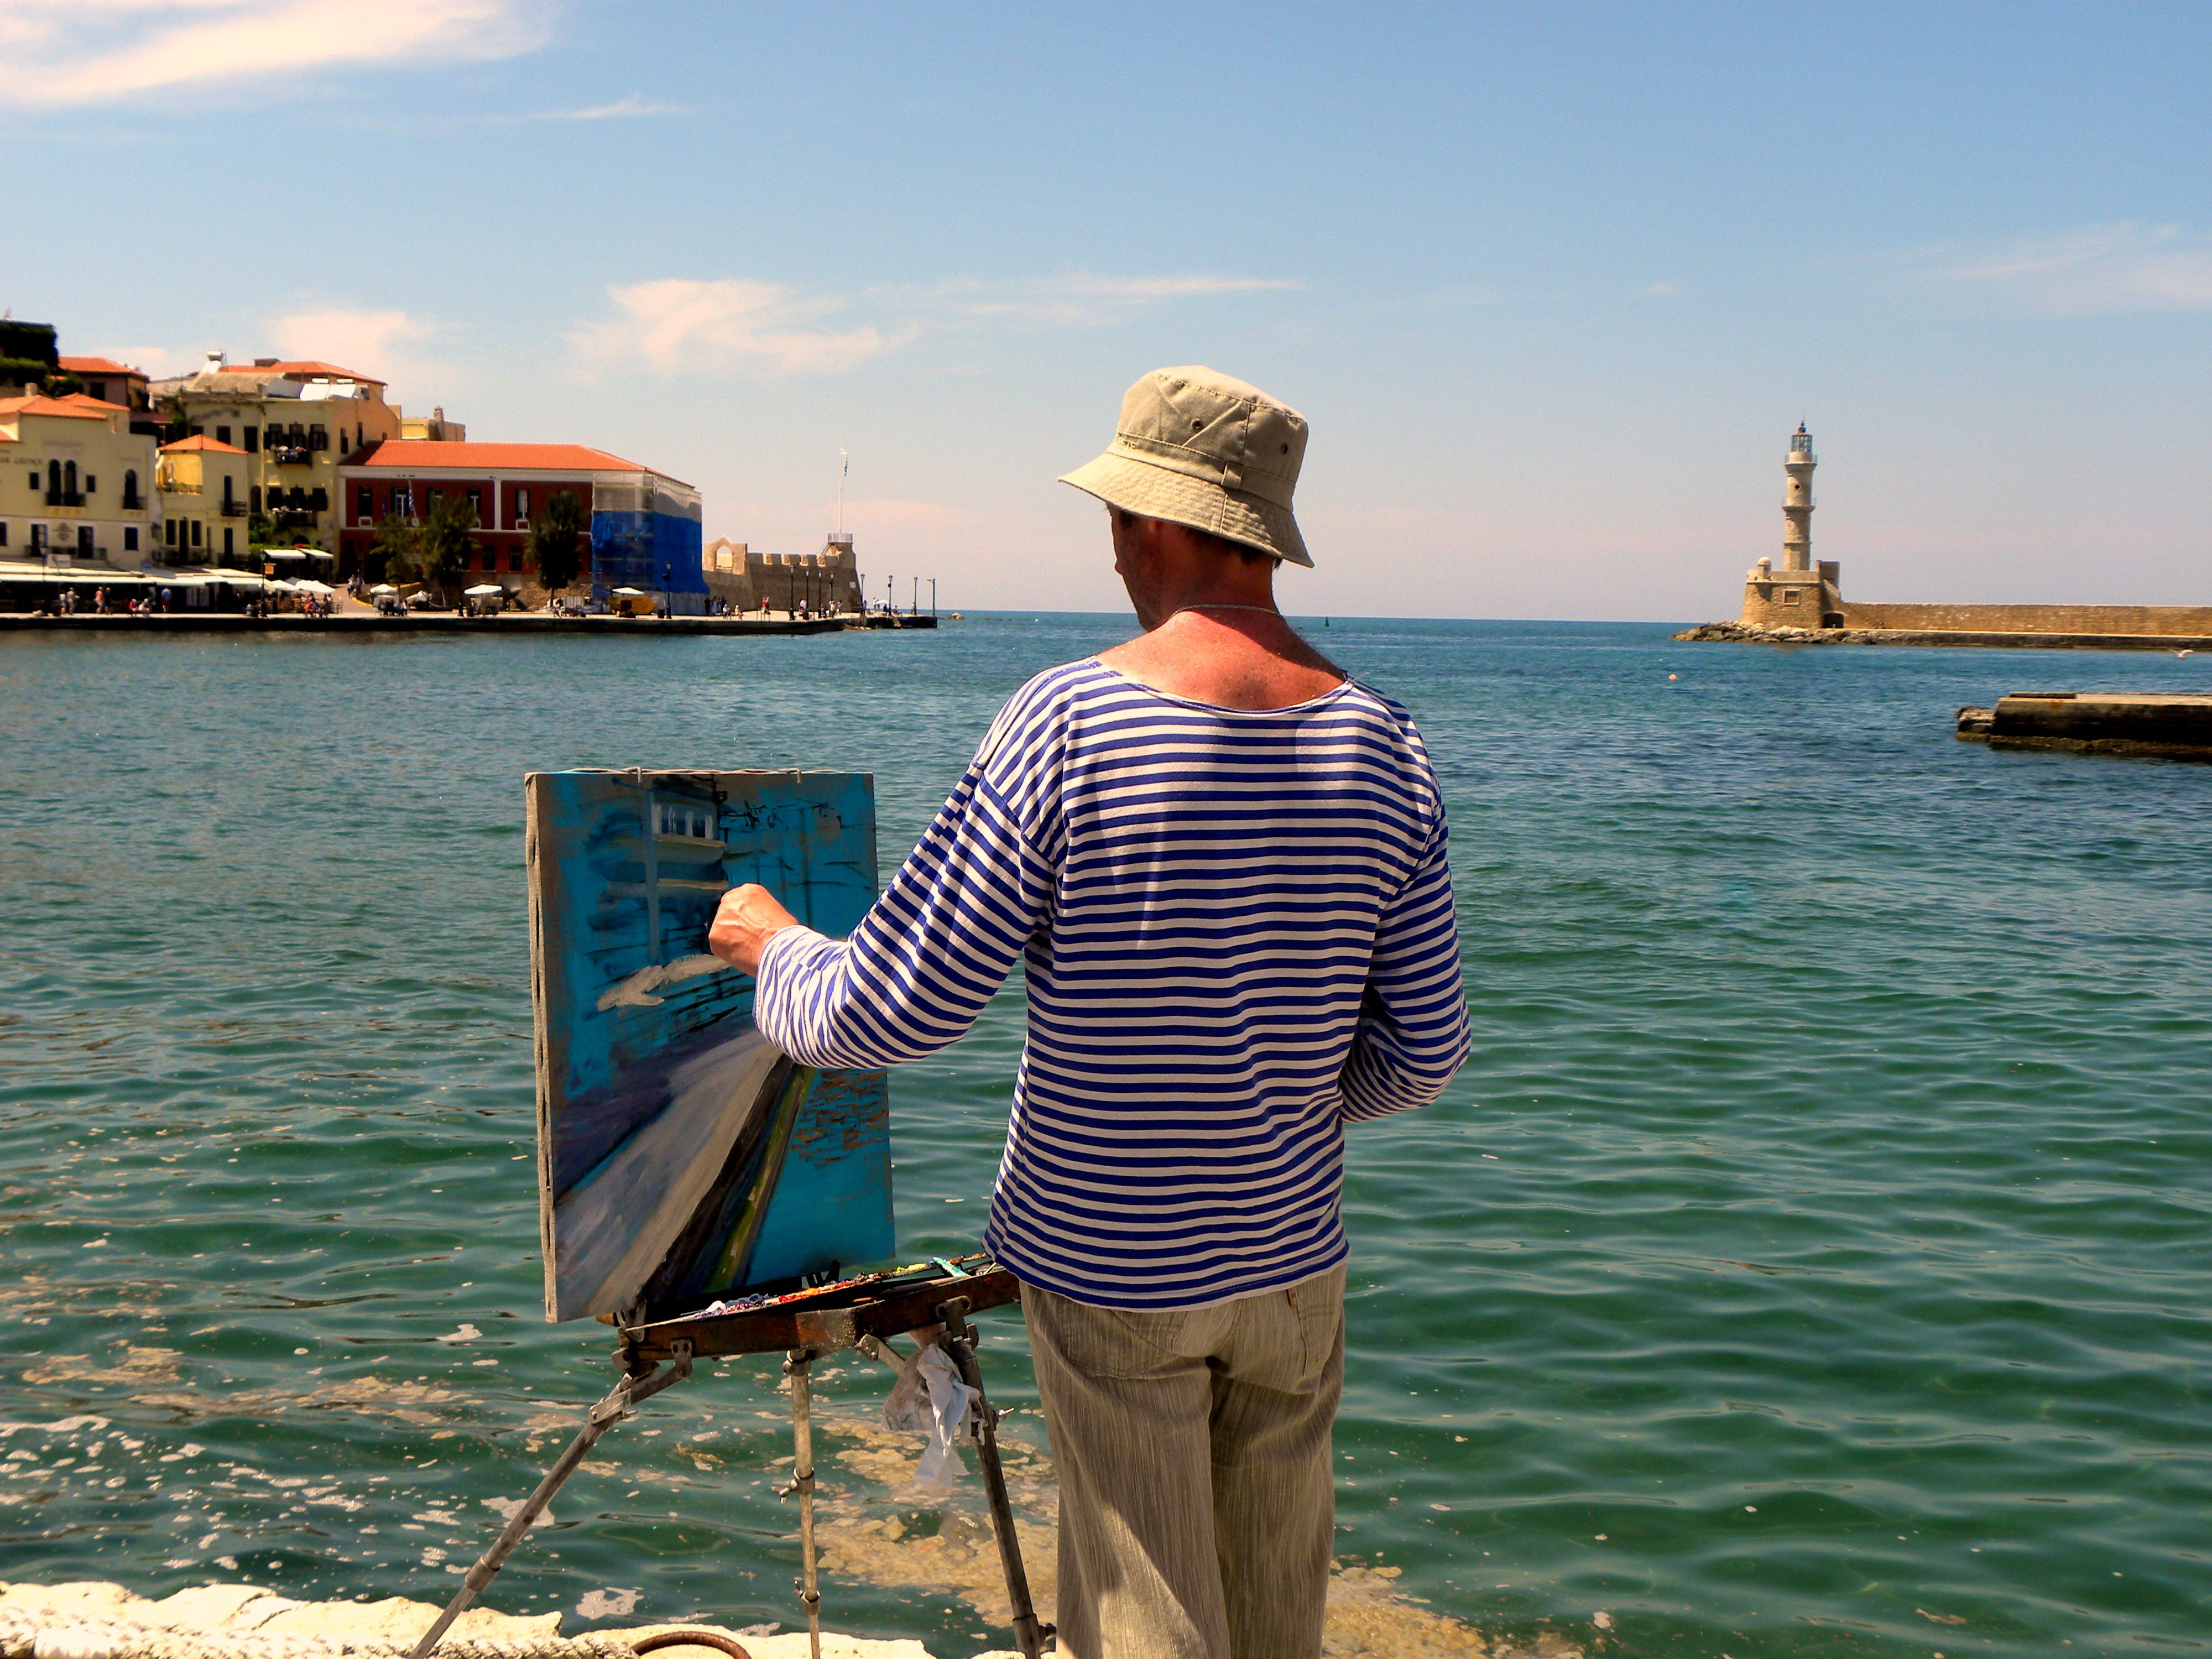 Man in White and Blue Striped Long-sleeved Shirt Painting Near Seashore